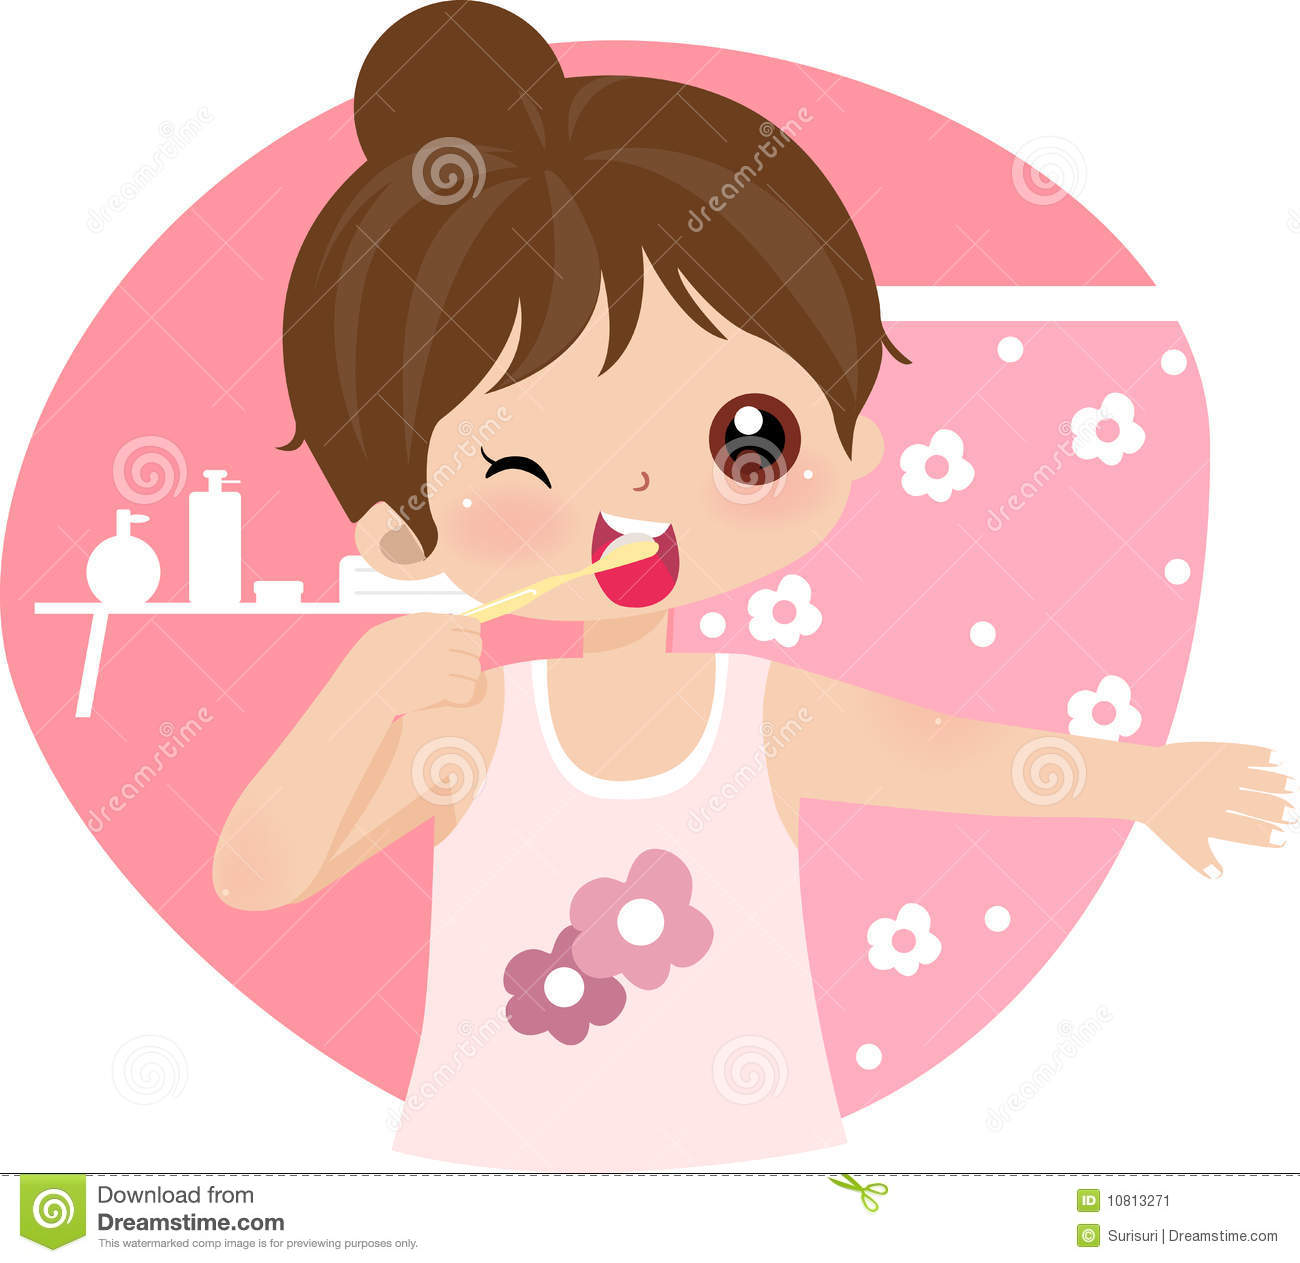 Brush Teeth Clipart - Home Design Jobs